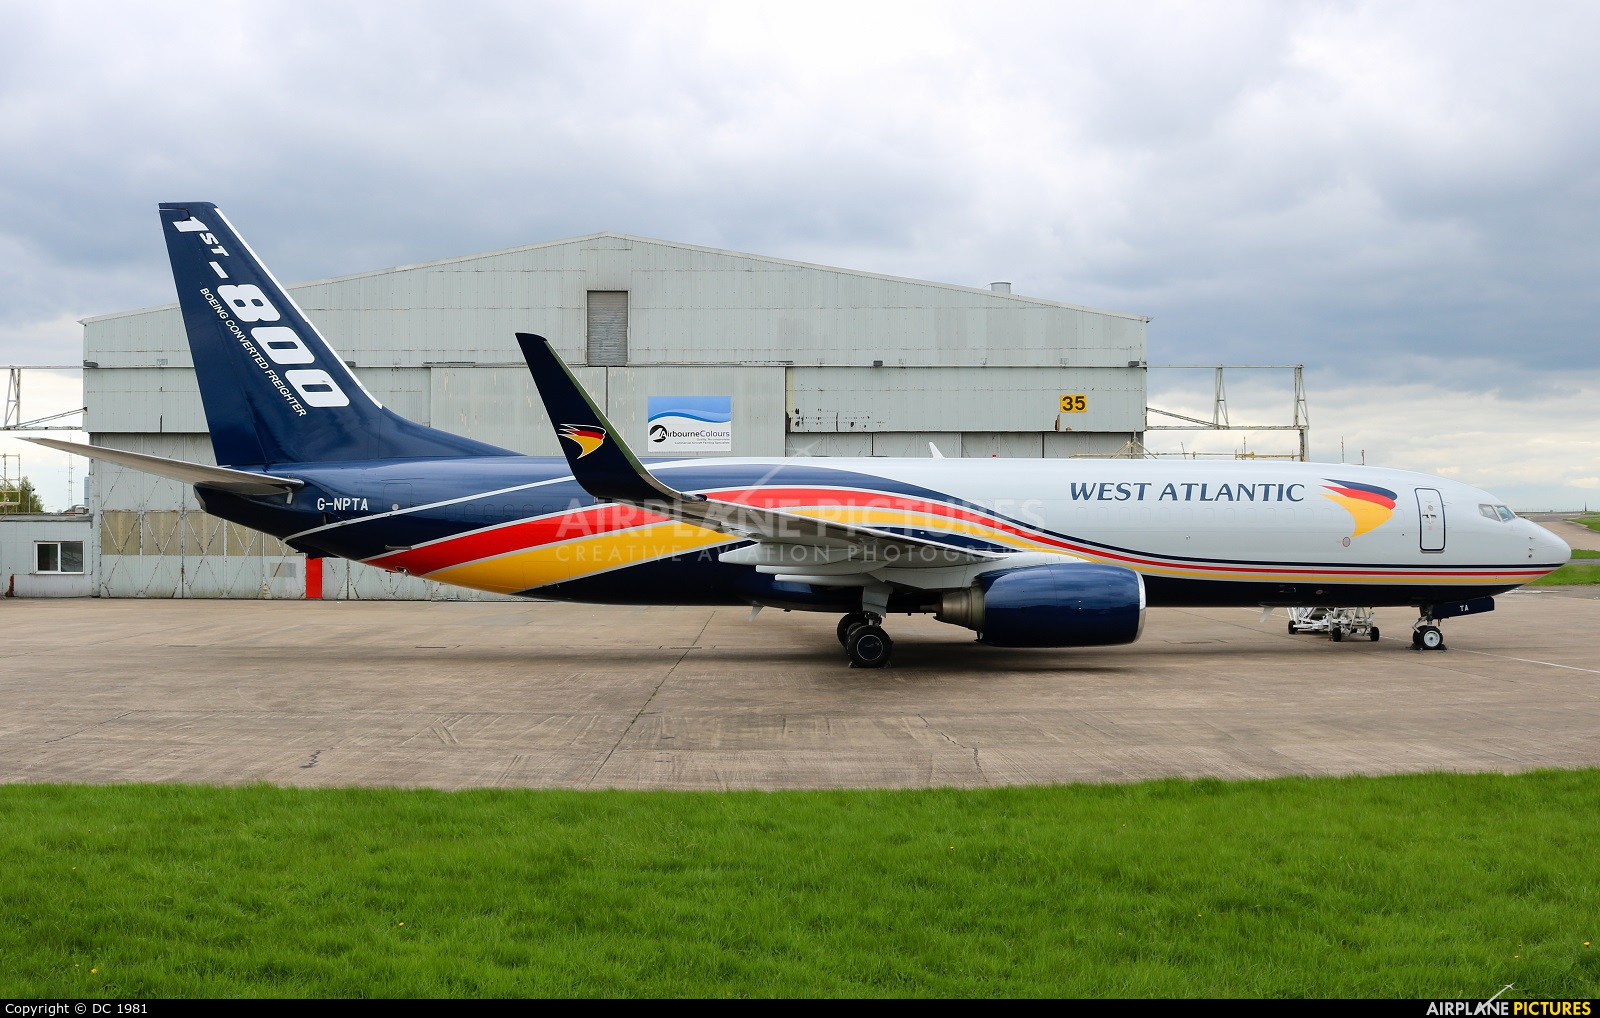 West Atlantic G-NPTA aircraft at East Midlands